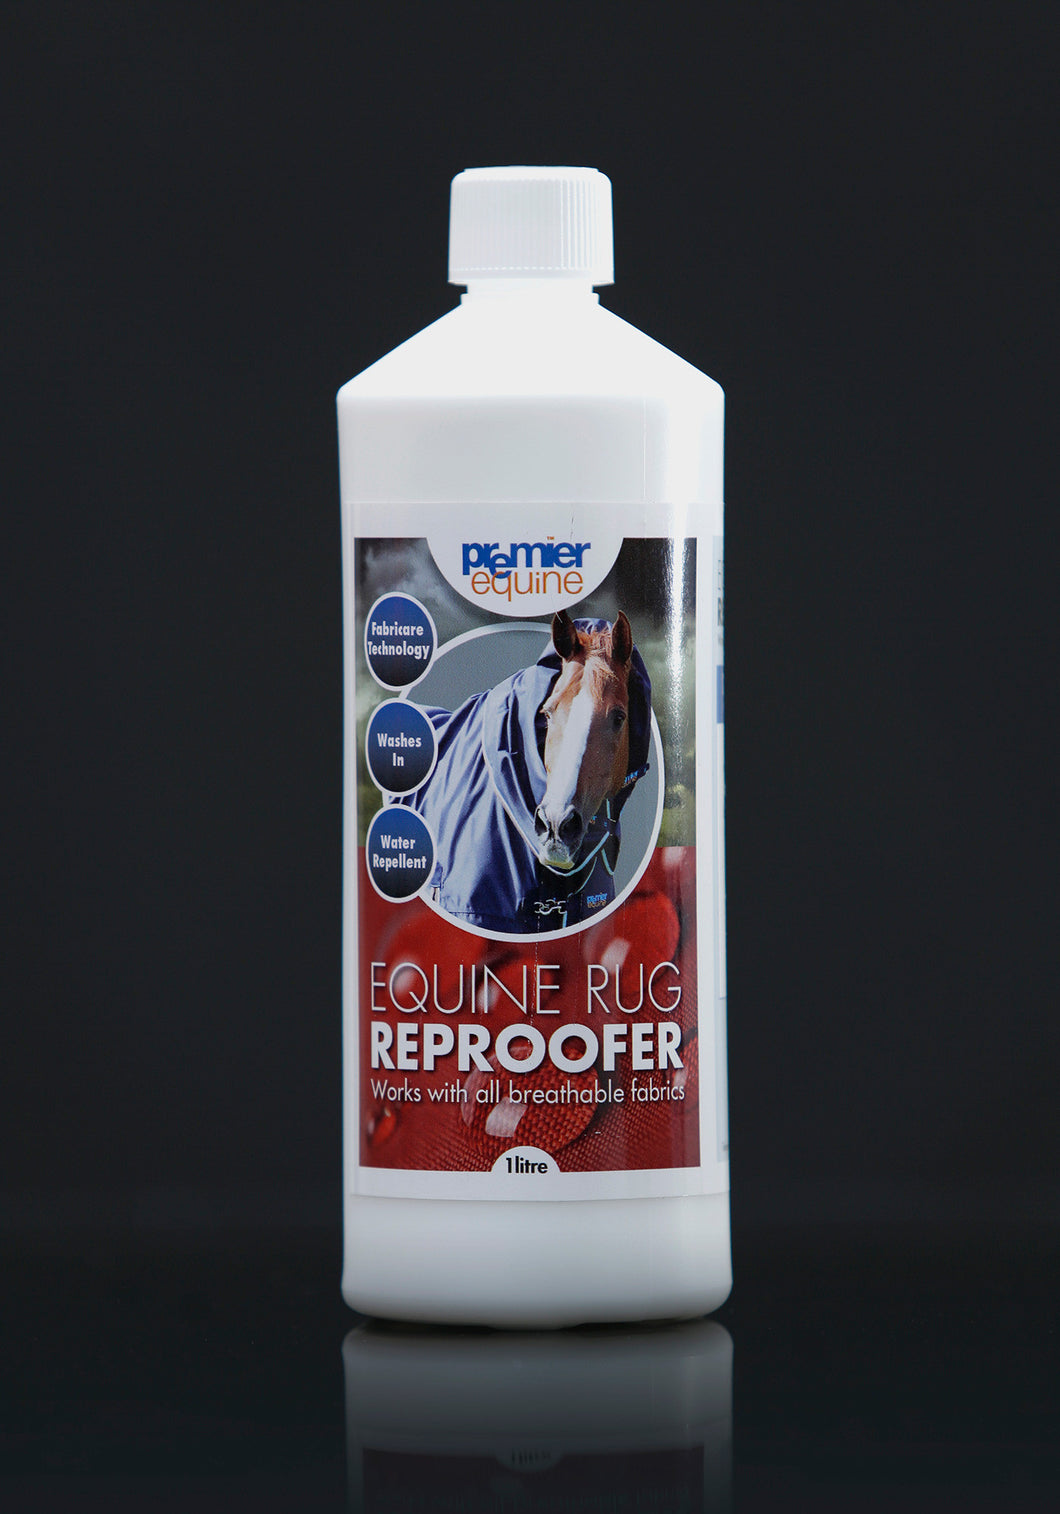 Equine Rug Reproofer, Leather Care & Blanket Care, Premier Equine - Laura's Tack Room